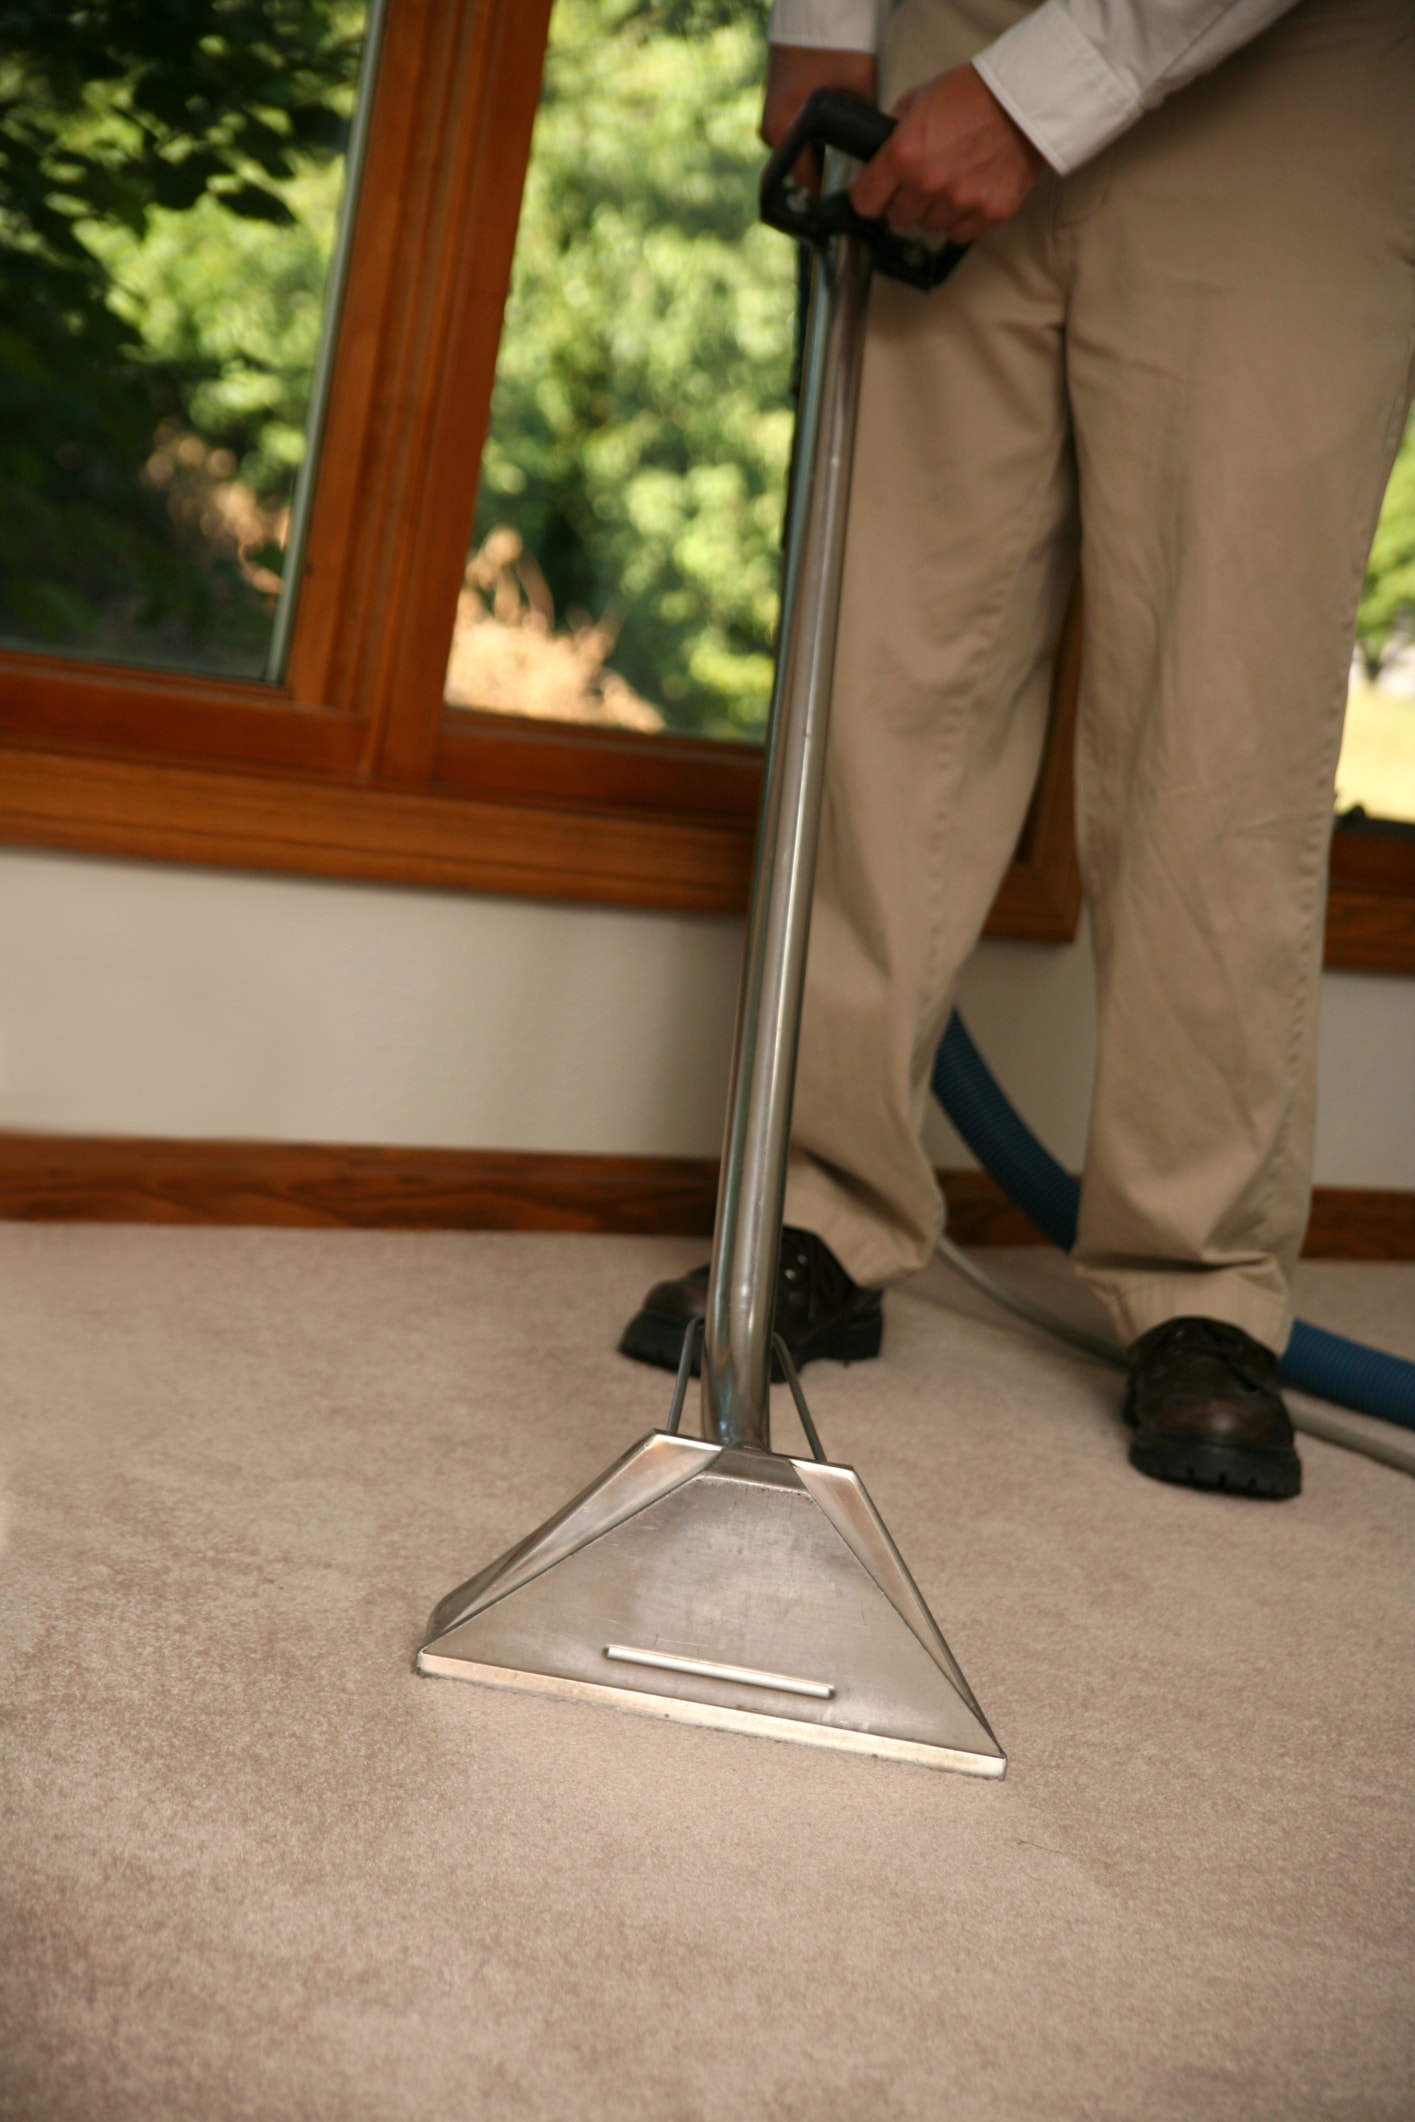 Carpet Cleaning in Gridley